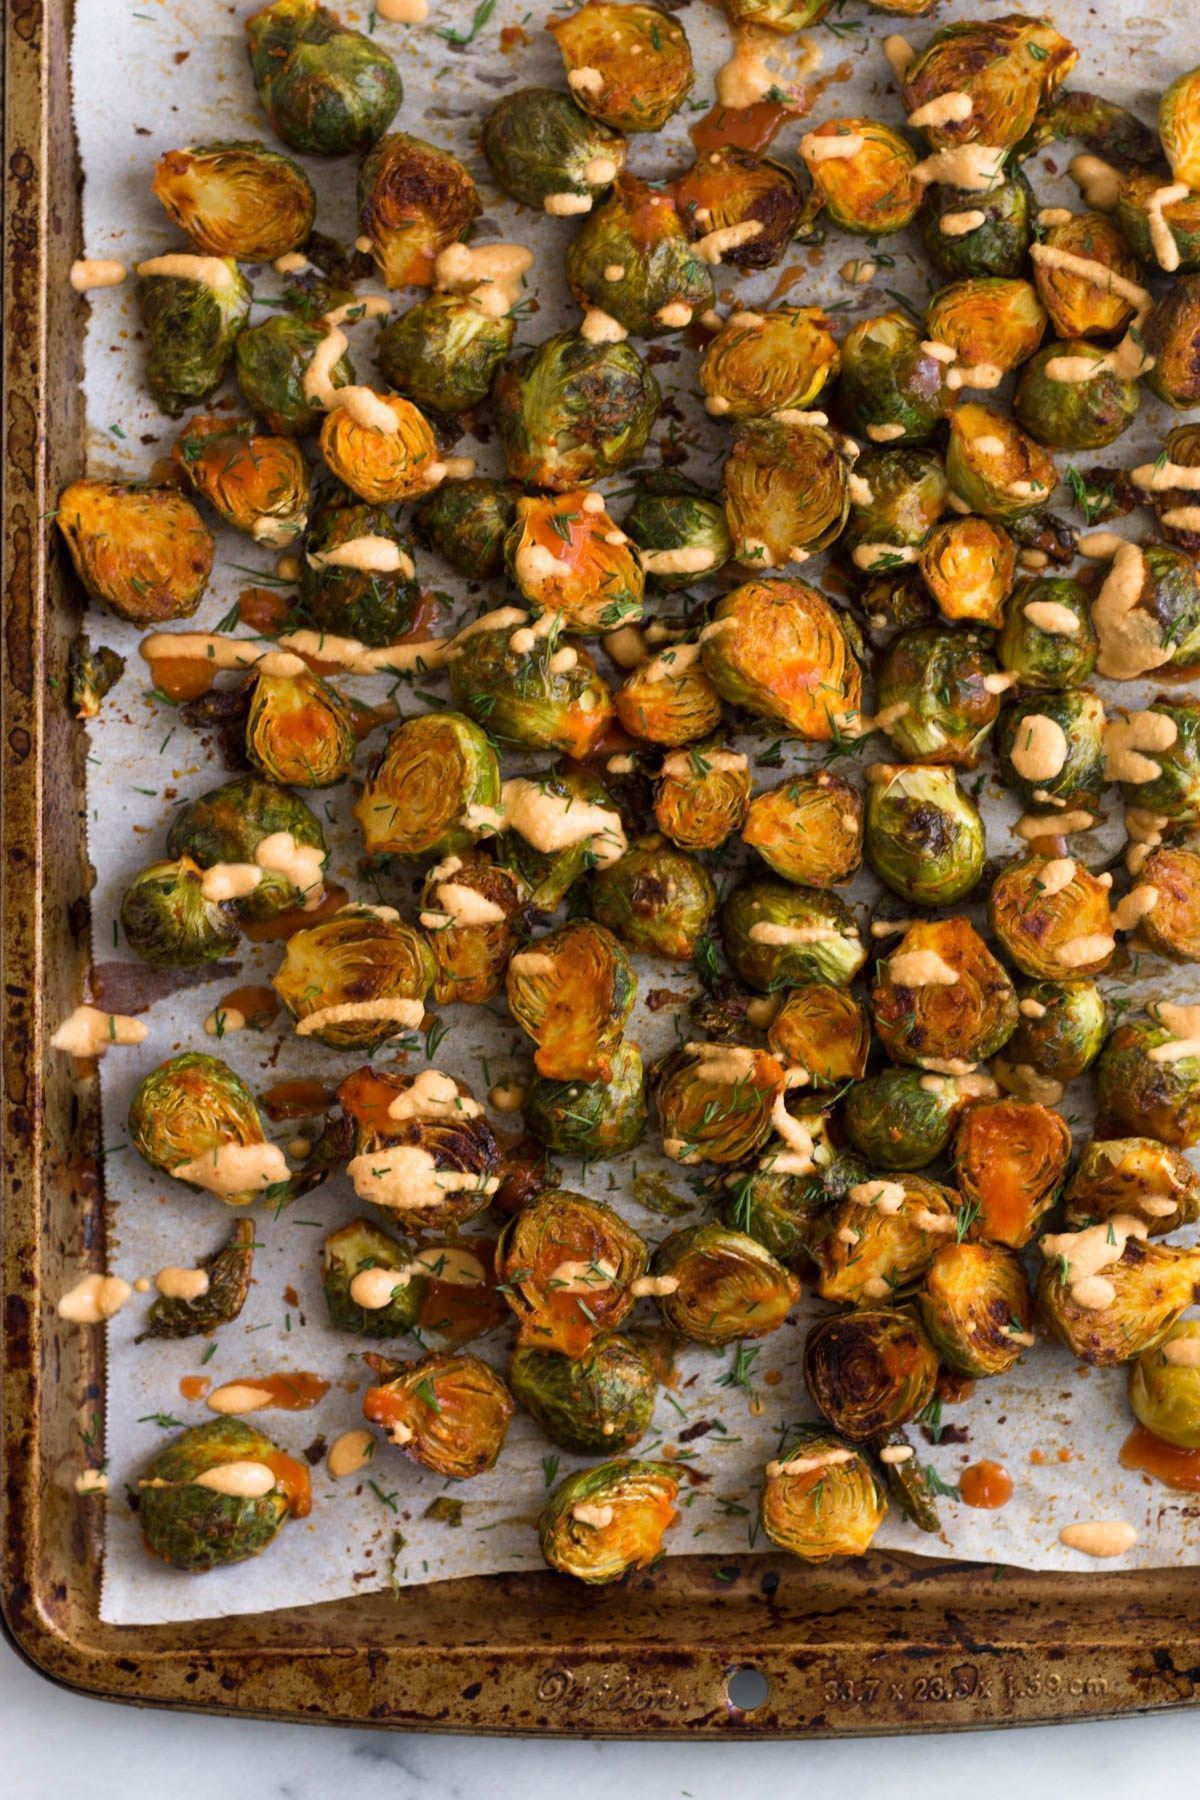 Cheesy Buffalo Brussel Sprouts #buffalobrusselsprouts Vegan and Whole30 approved, these Cheesy Buffalo Brussel Sprouts will be a sure hit! Perfect for an appetizer, side dish, or for game day snacking! Dairy free, paleo, and gluten free too - Eat the Gains #brusselsprouts #vegan #paleo #glutenfree #whole30 #buffalobrusselsprouts Cheesy Buffalo Brussel Sprouts #buffalobrusselsprouts Vegan and Whole30 approved, these Cheesy Buffalo Brussel Sprouts will be a sure hit! Perfect for an appetizer, si #buffalobrusselsprouts